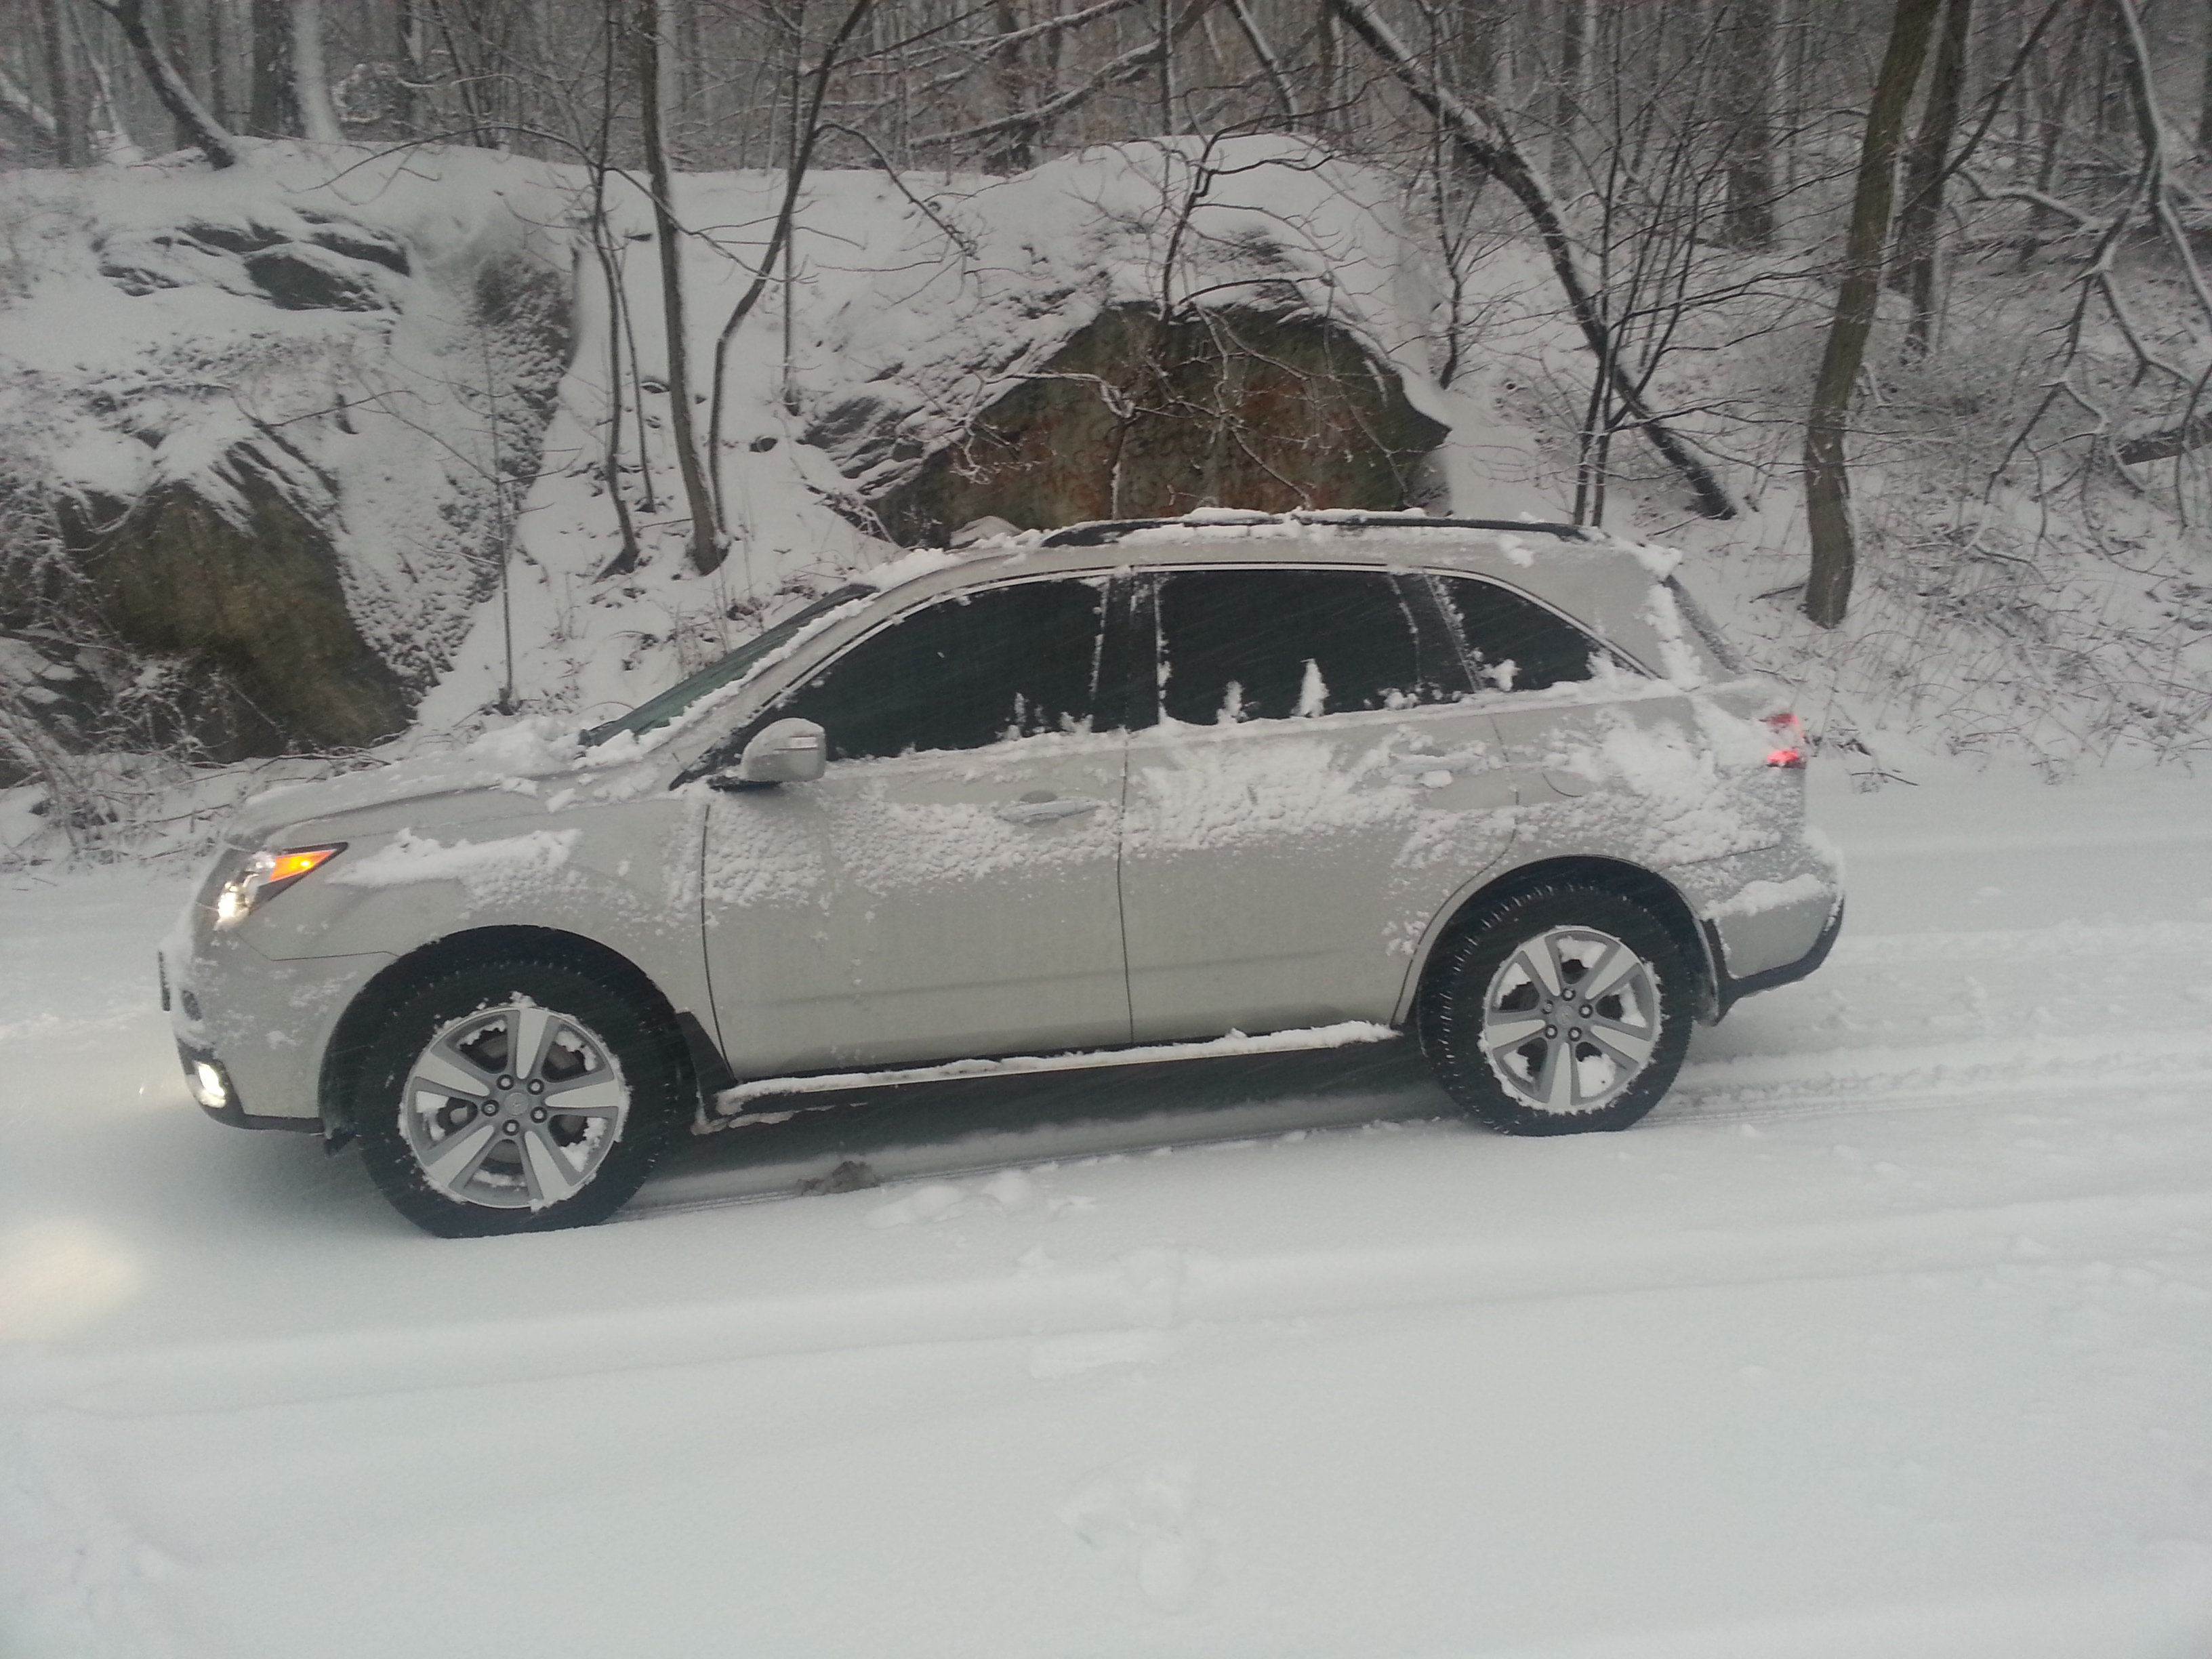 The new england storm of 2013.. how did your mdx do?-20130208_165634.jpg